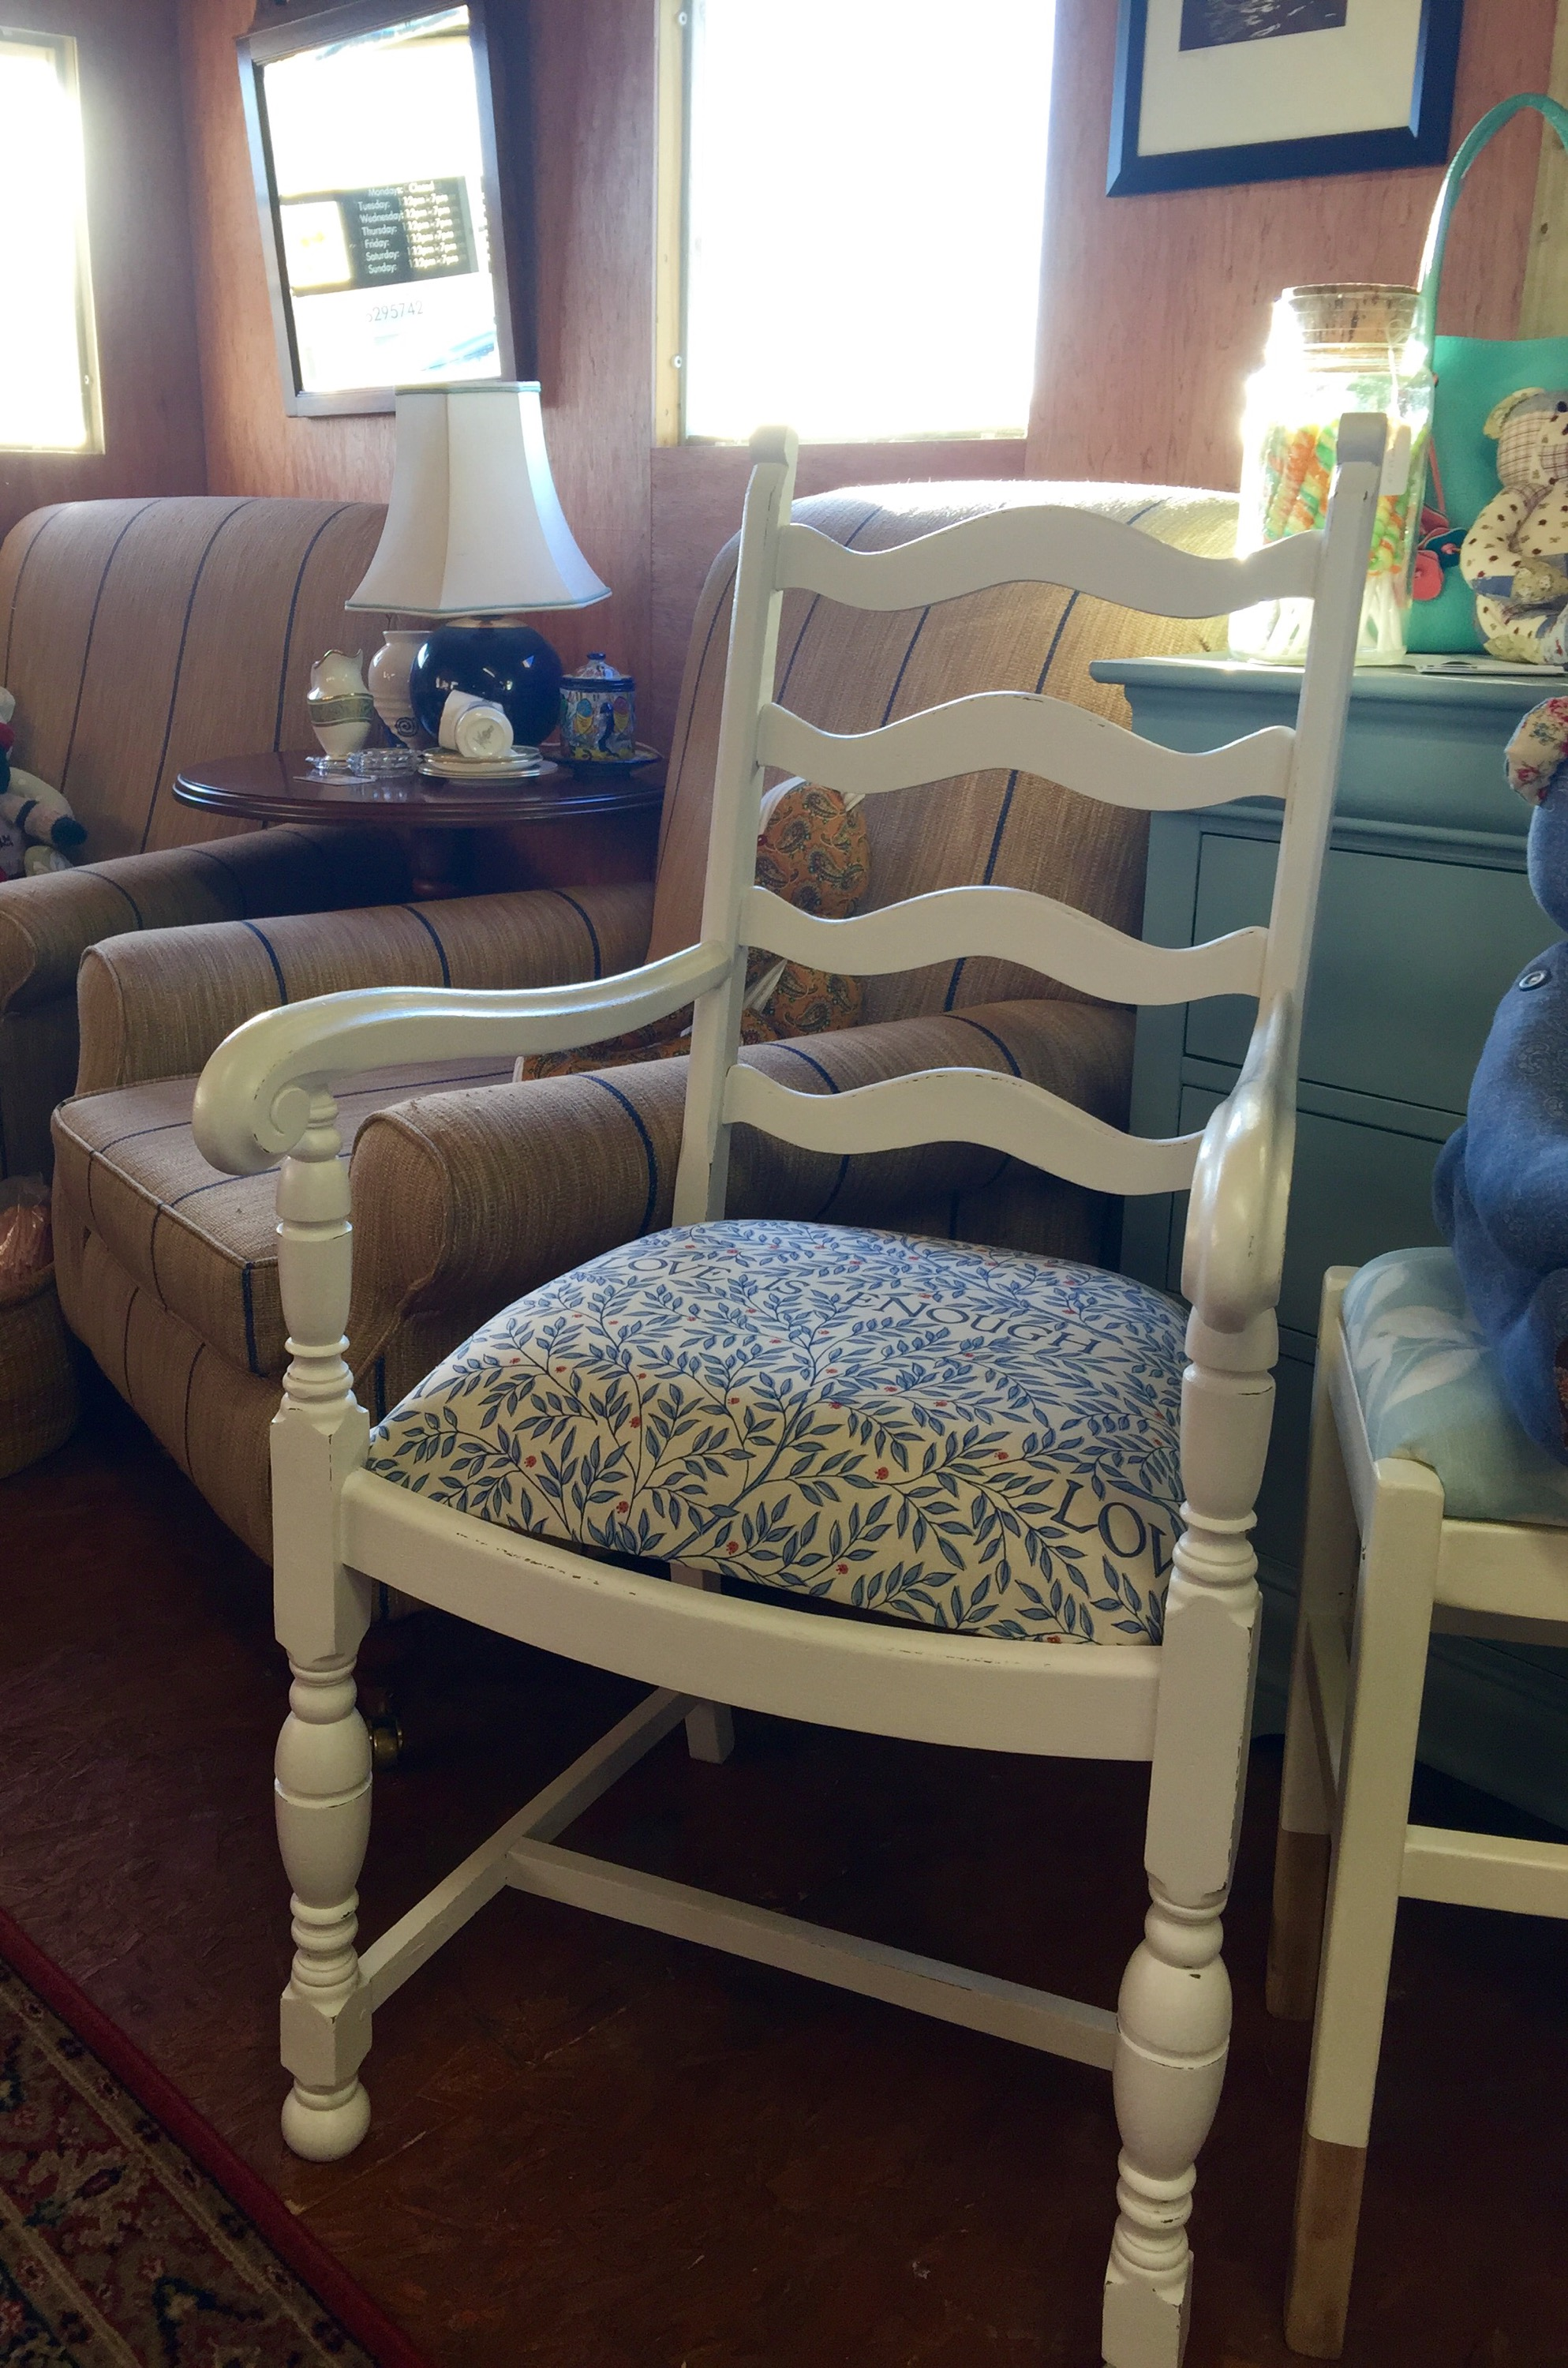 A Vintage Bedroom Chair